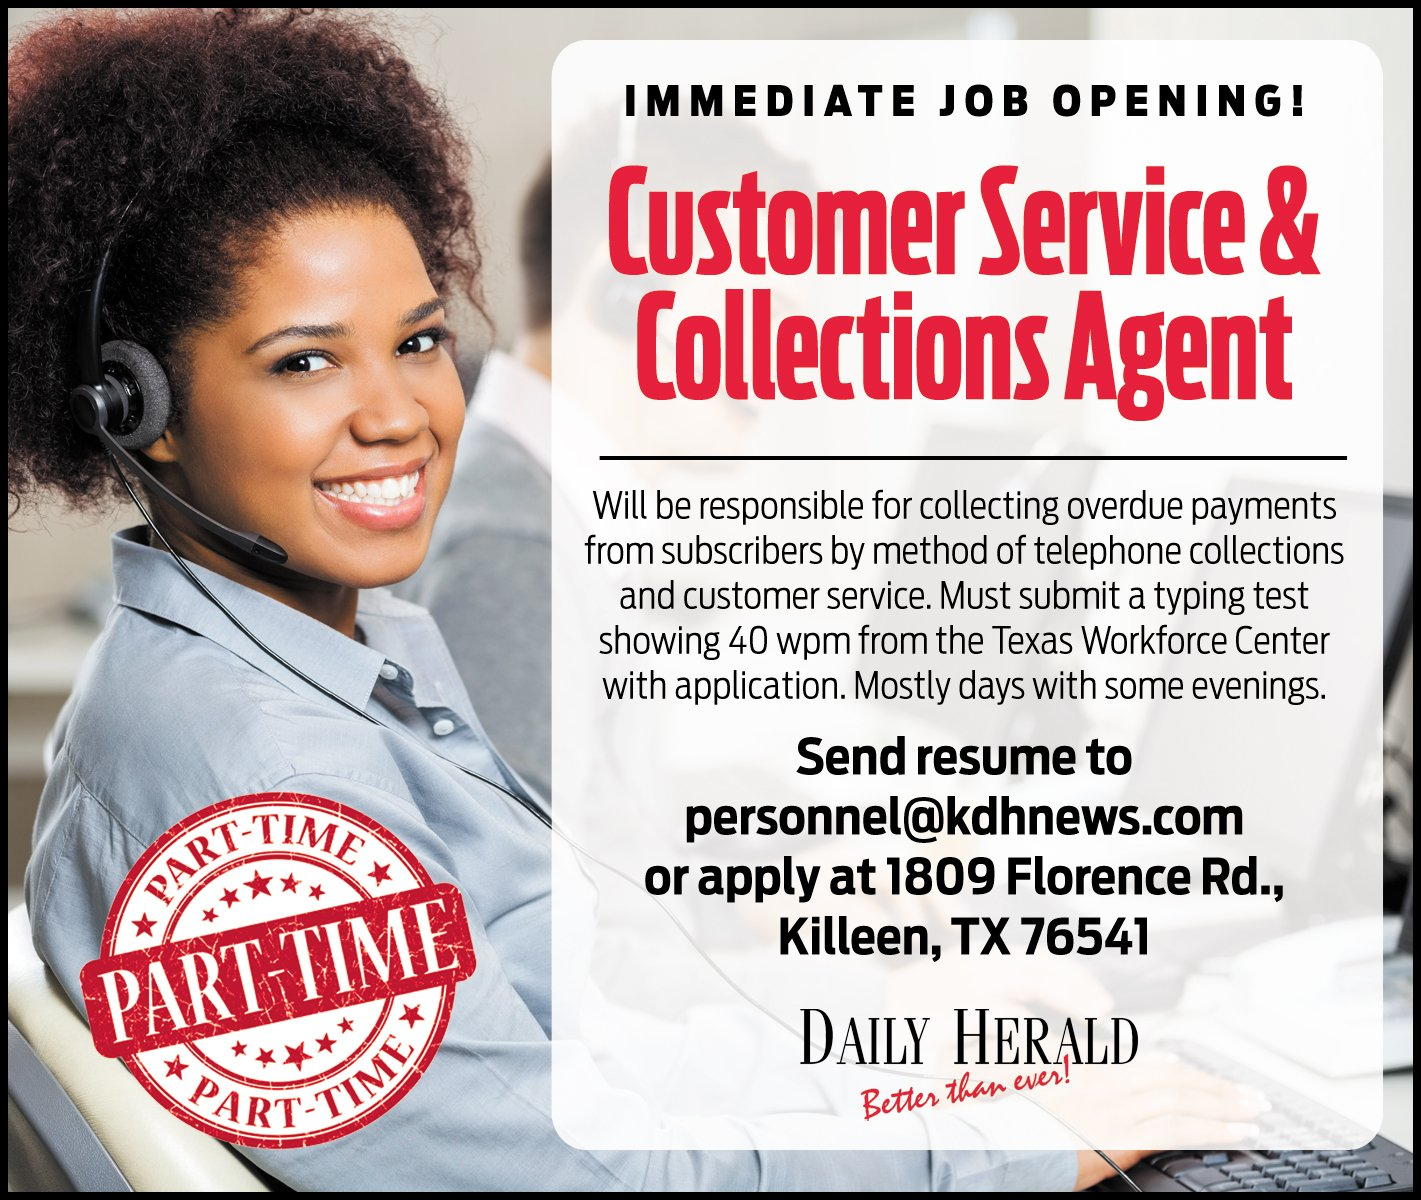 Customer Service & Collections Agent